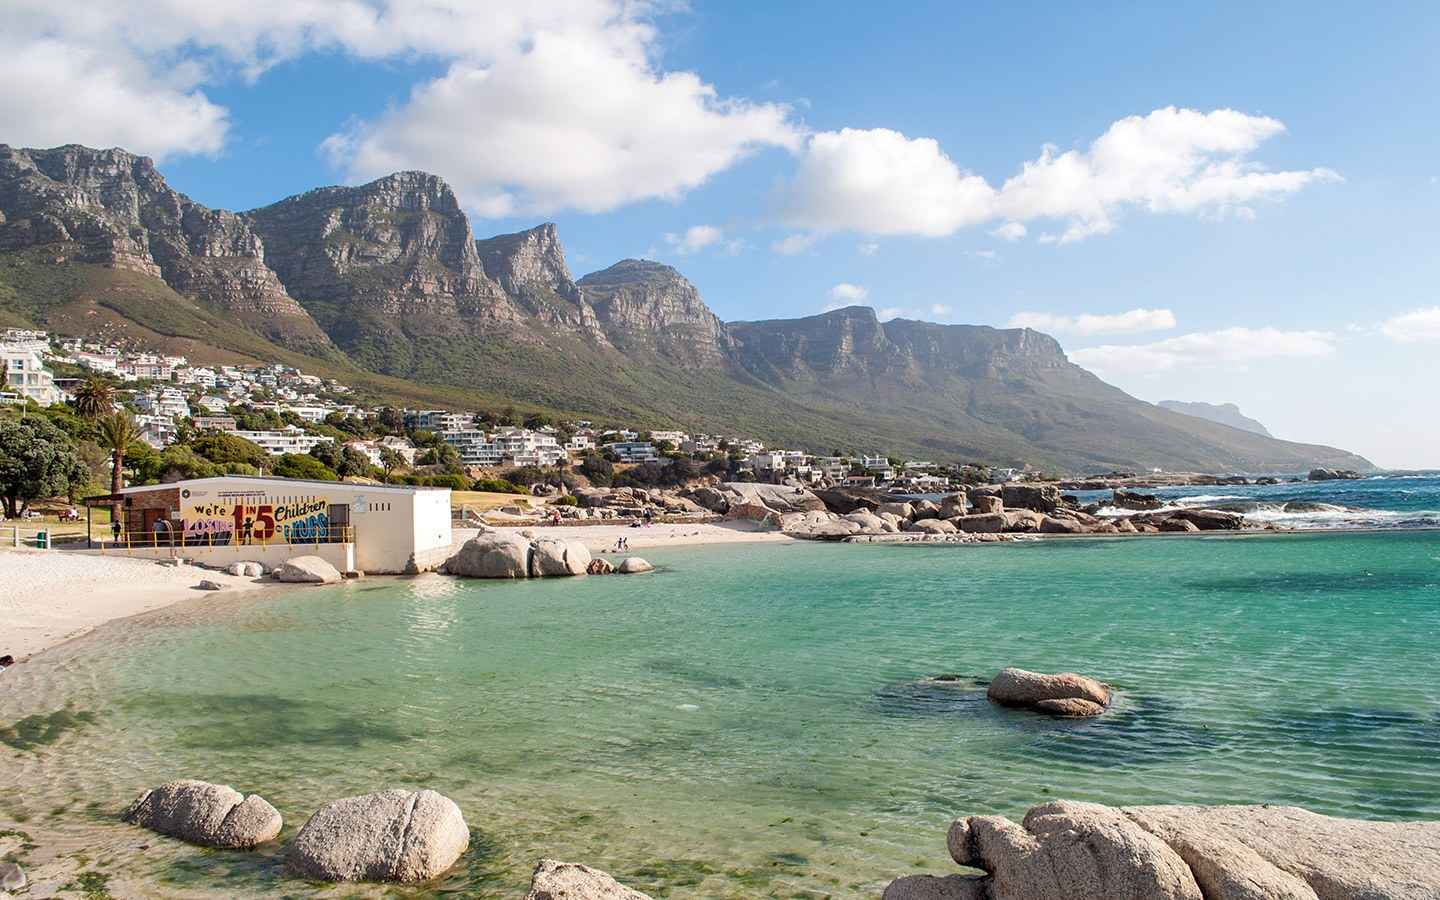 Camps Bay beach in South Africa